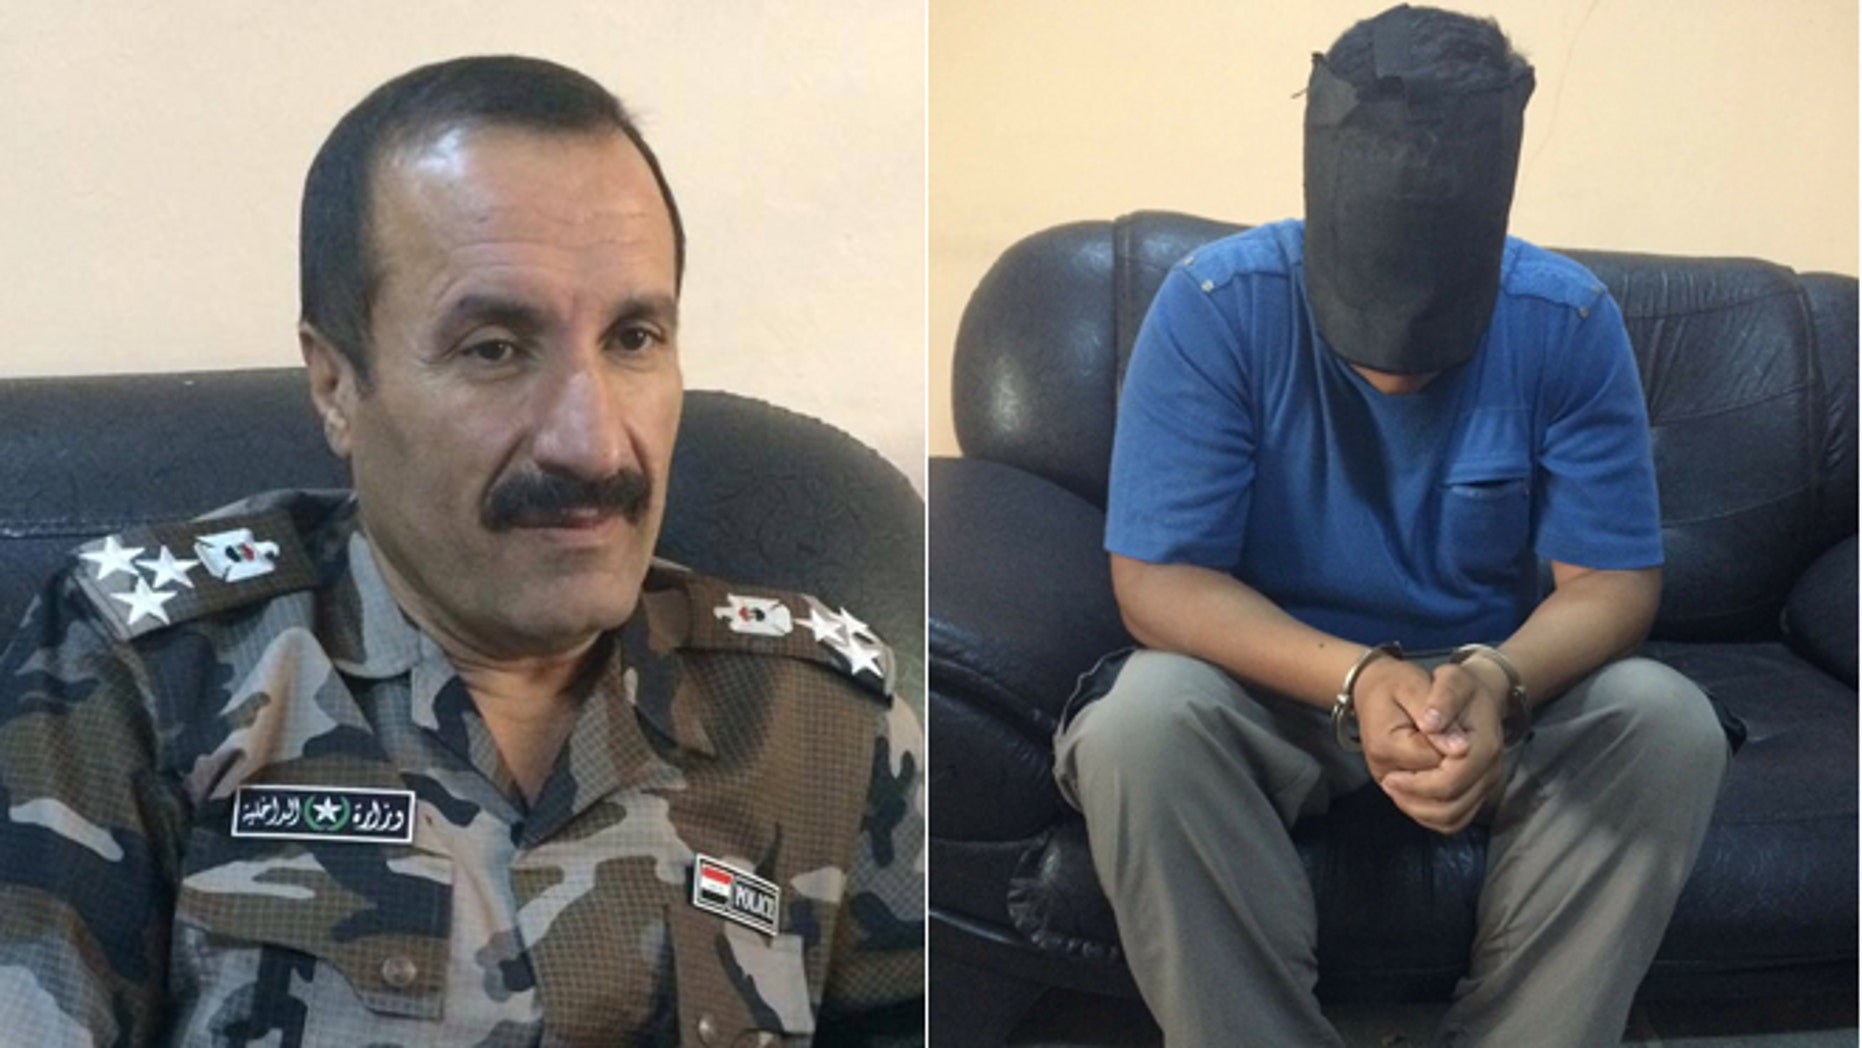 Former ISIS fighter Thahir Sahab Jamel, (r.), claims to disavow the terror group, but Kirkuk Police Brig. Gen. Sarhad Qader Mohammad, (l.), said such conversions are common among prisoners facing hanging.